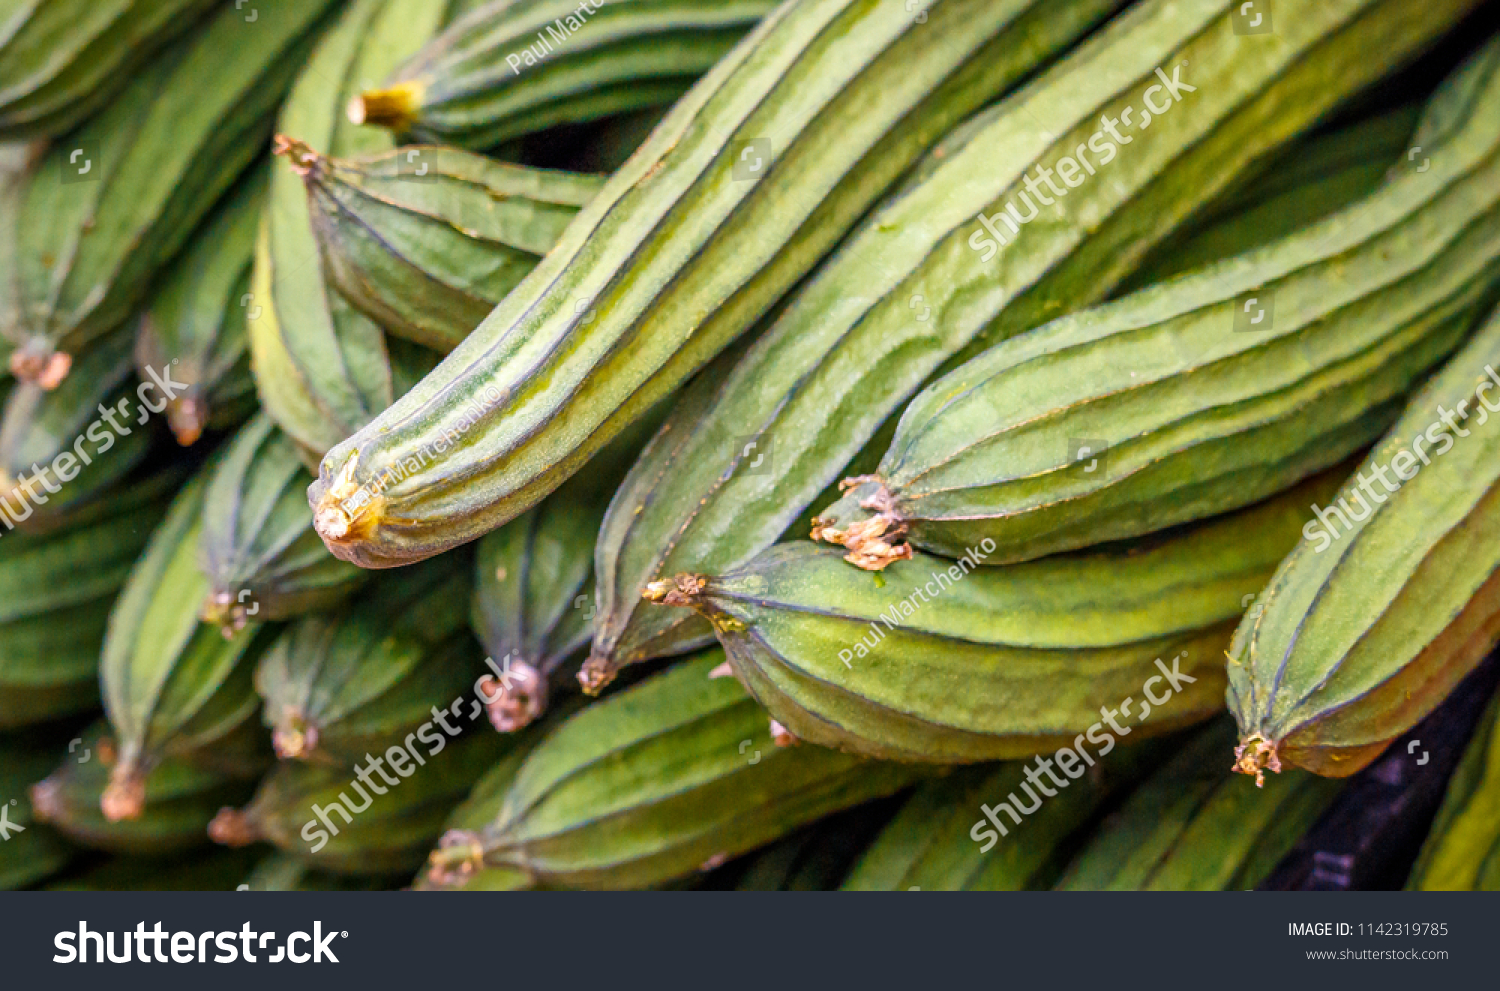 Chinese okra sqush bunched together #1142319785